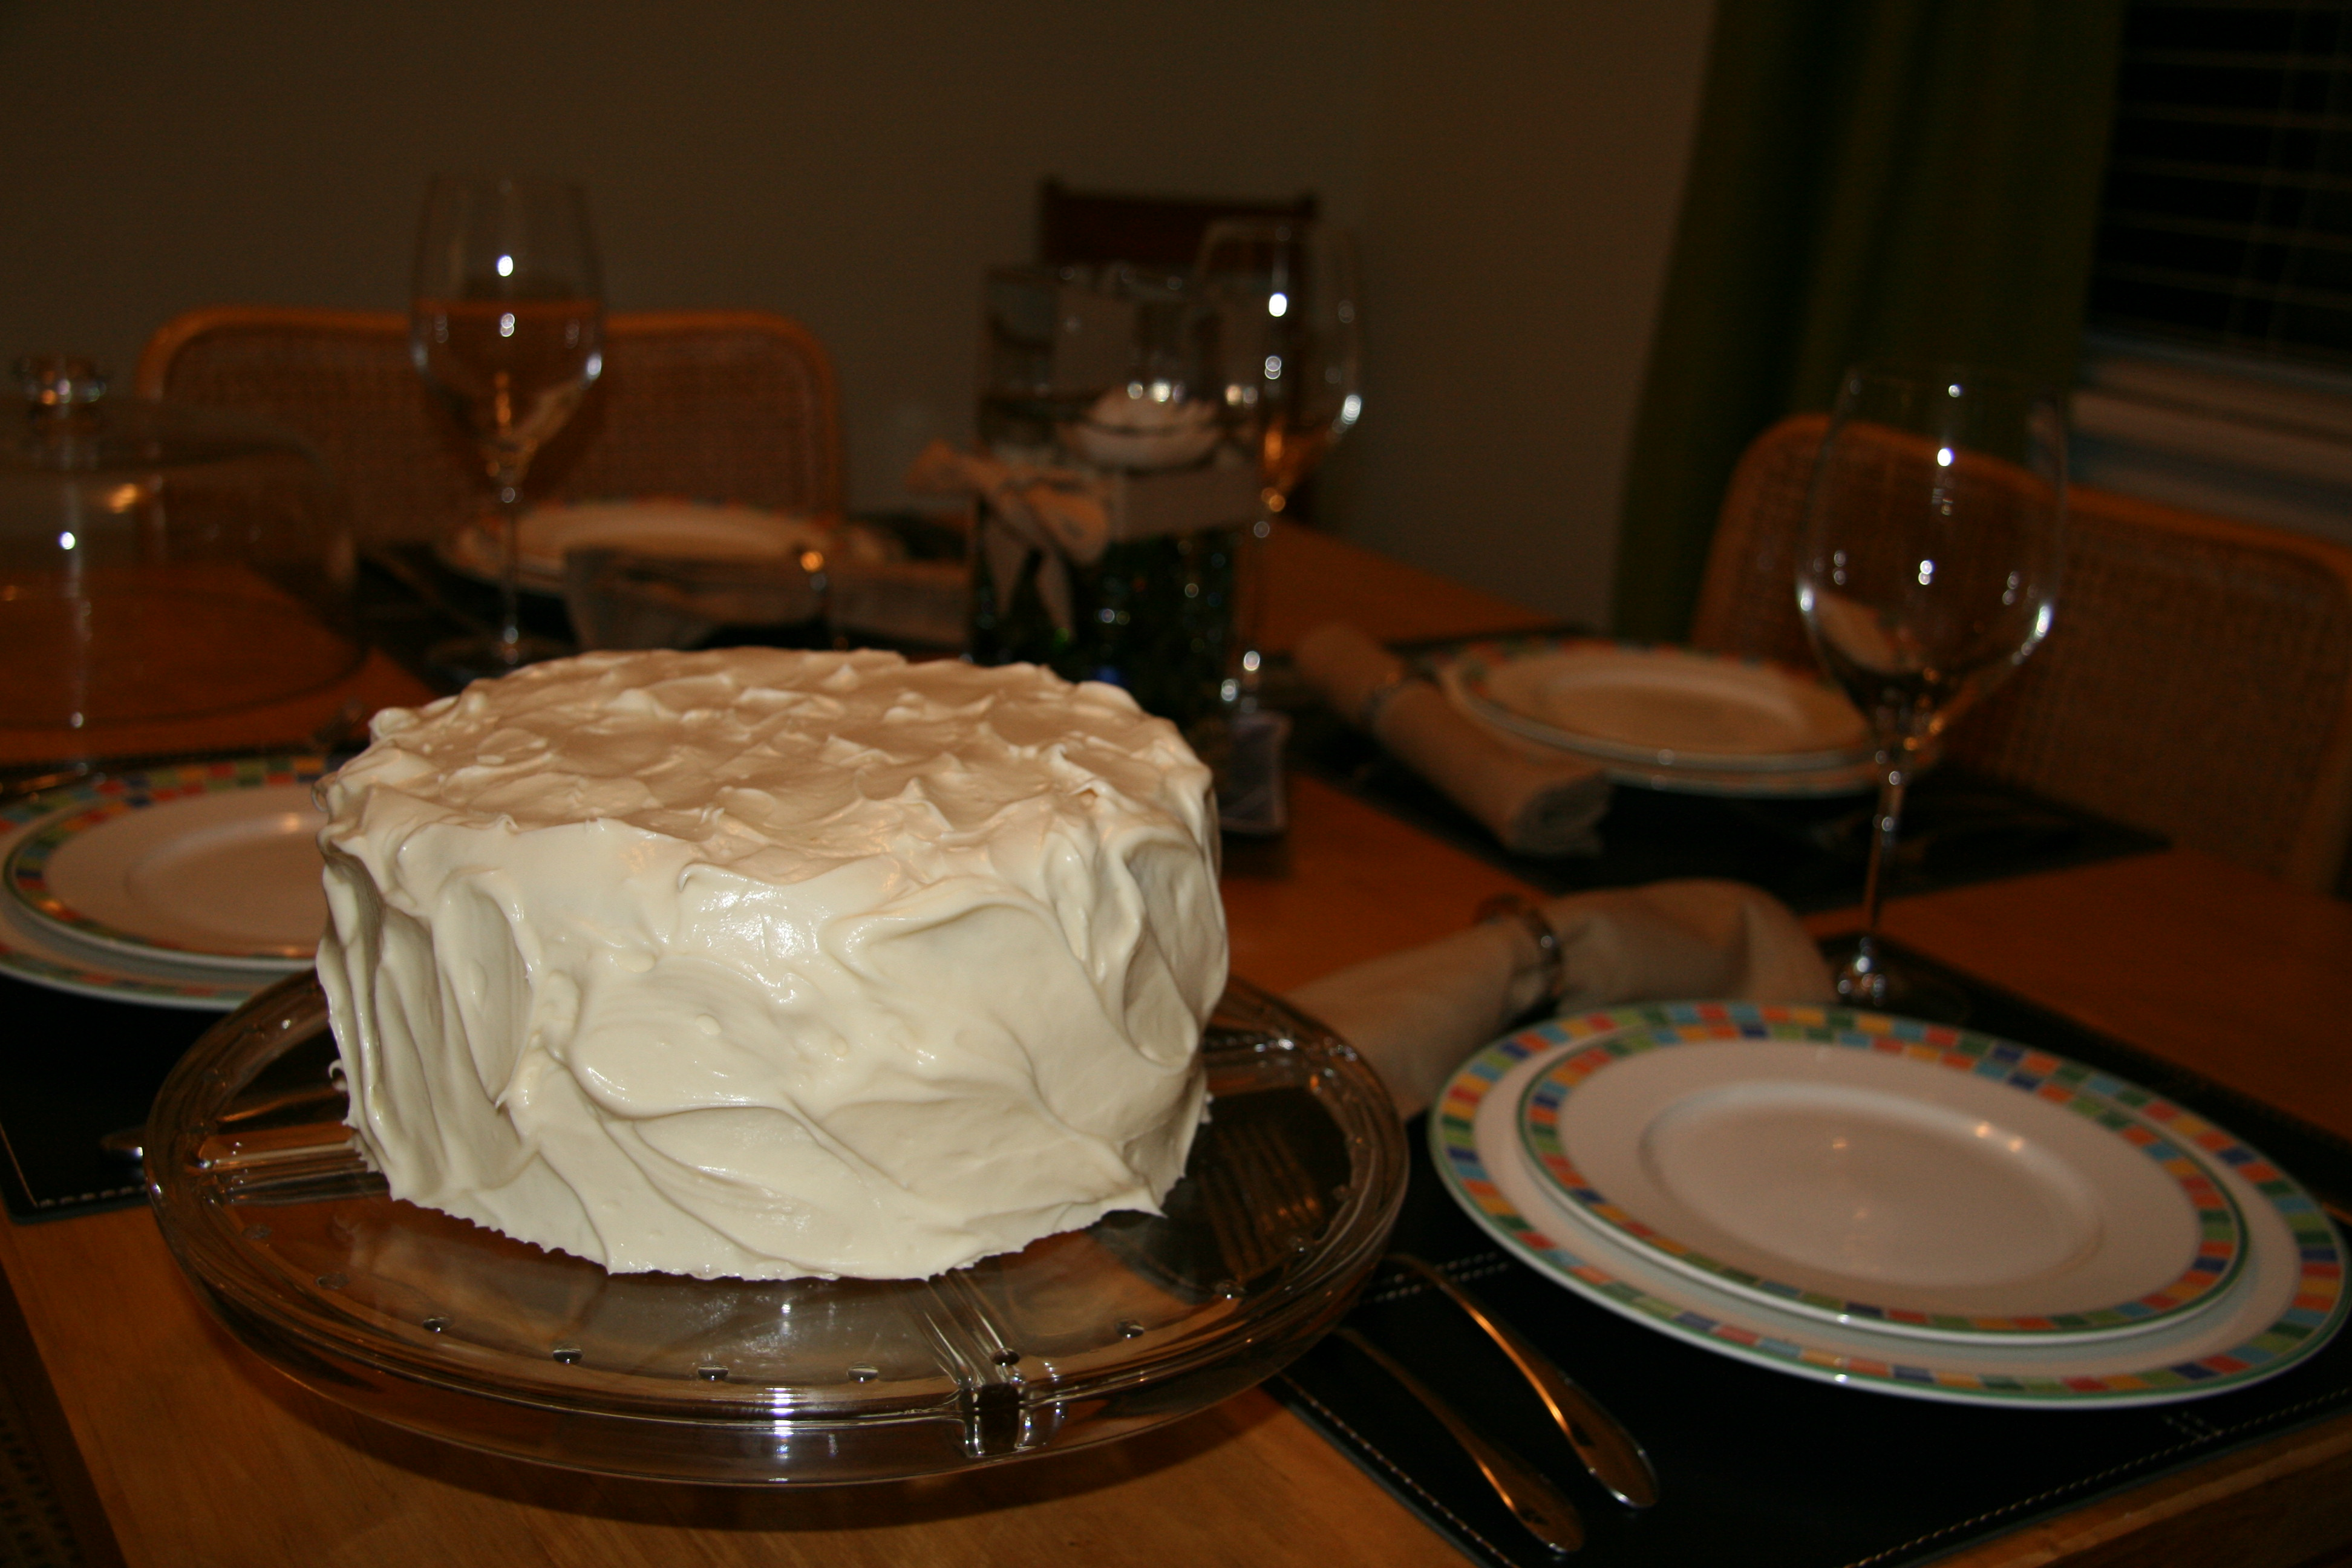 Epicurious Triple Layer Carrot Cake With Cream Cheese Frosting